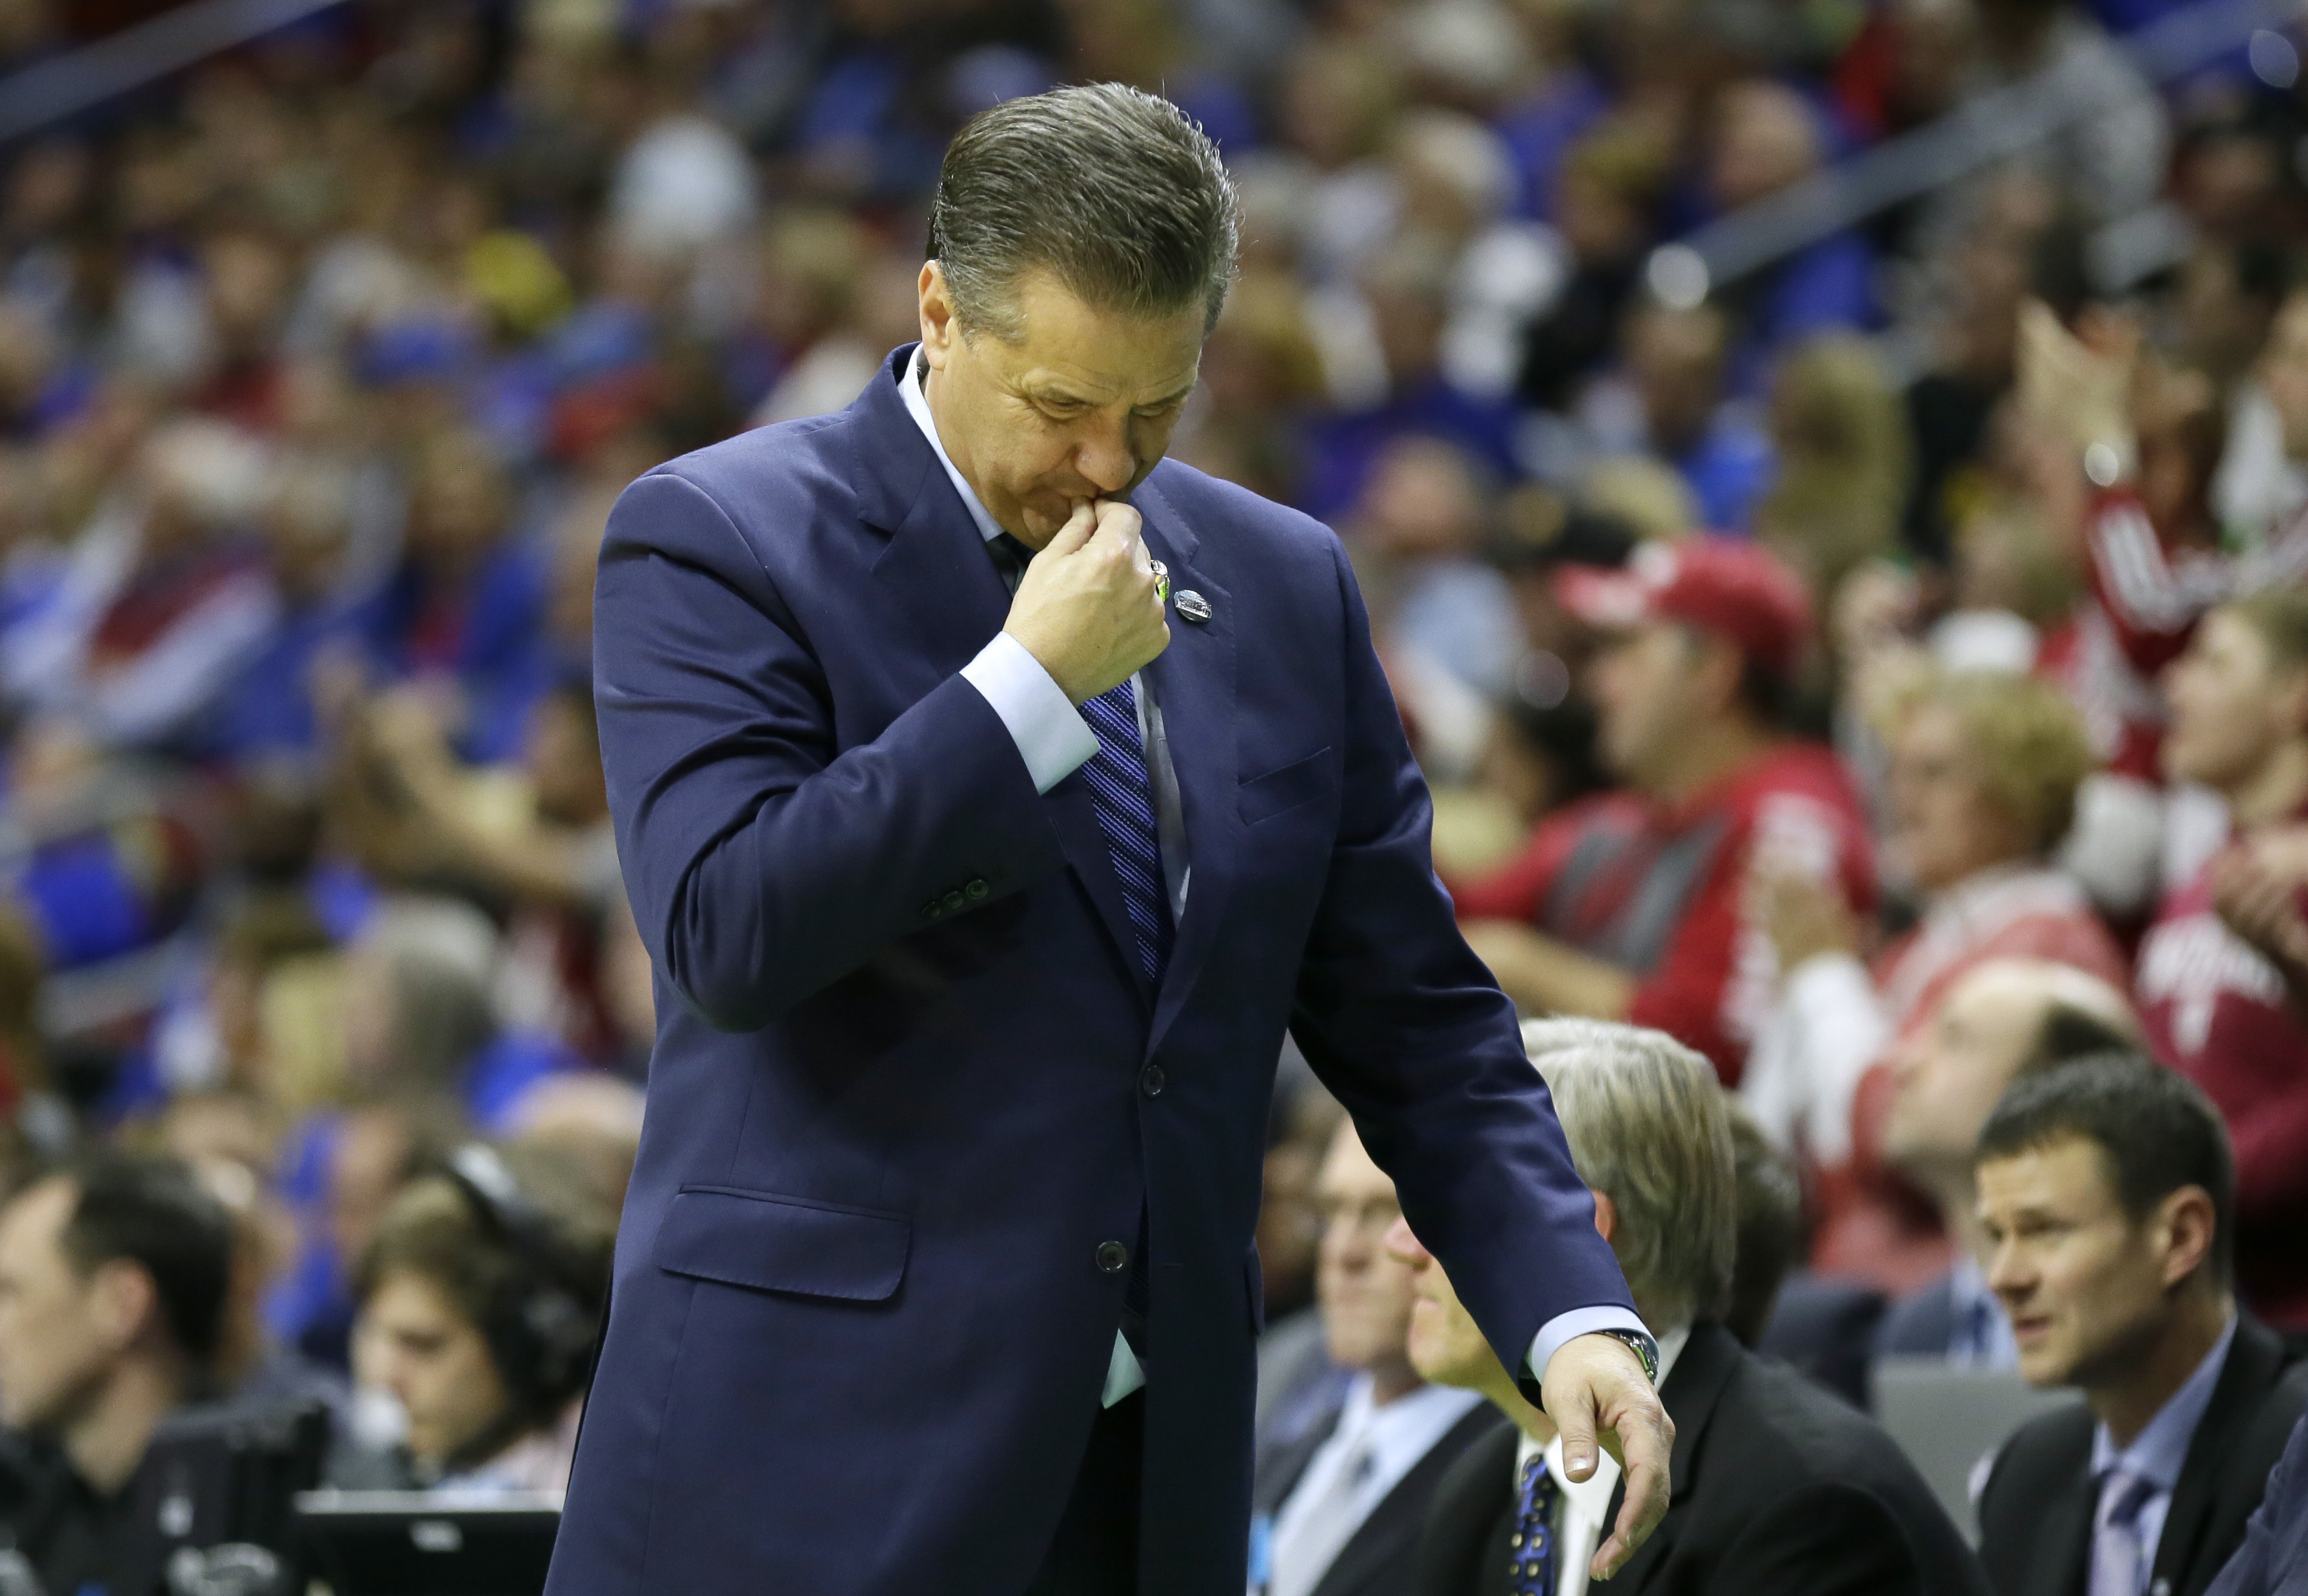 Kentucky head coach John Calipari reacts on the sideline during the second half of a second-round men's college basketball game against Indiana in the NCAA Tournament, Saturday, March 19, 2016, in Des Moines, Iowa. (AP Photo/Charlie Neibergall)